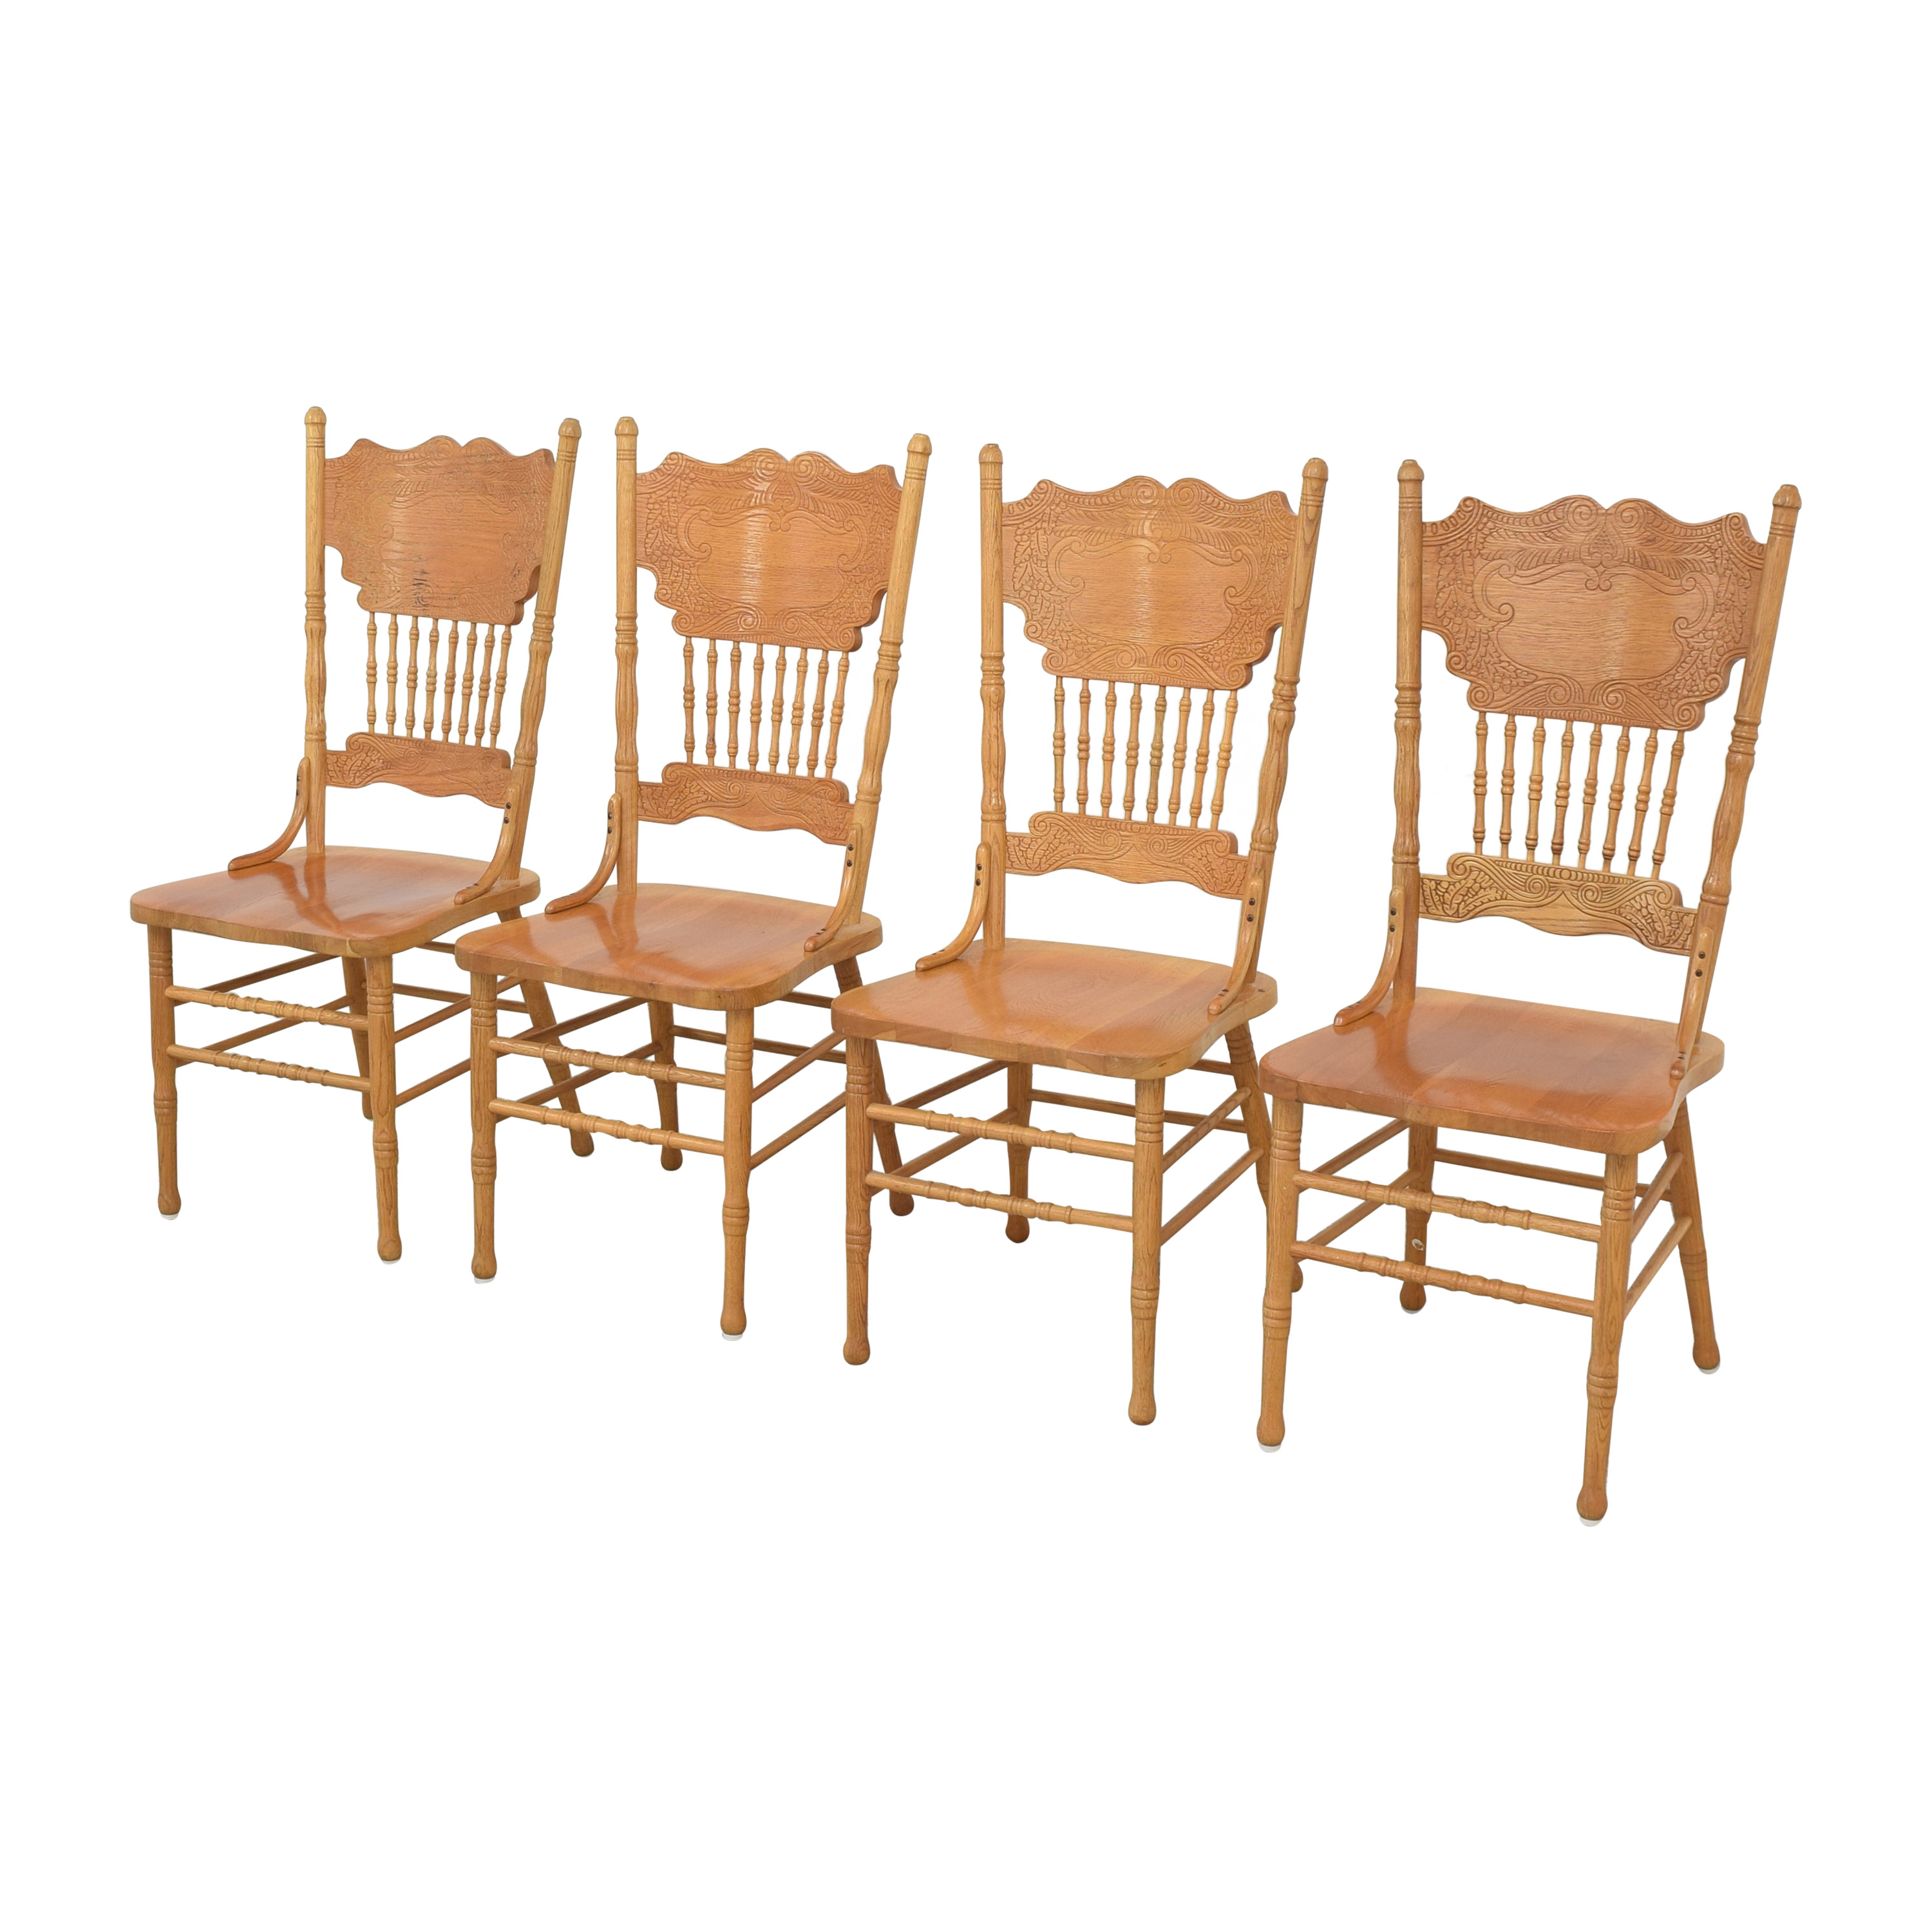 shop A-America Wood Carved Dining Chairs A-America Wood Furniture